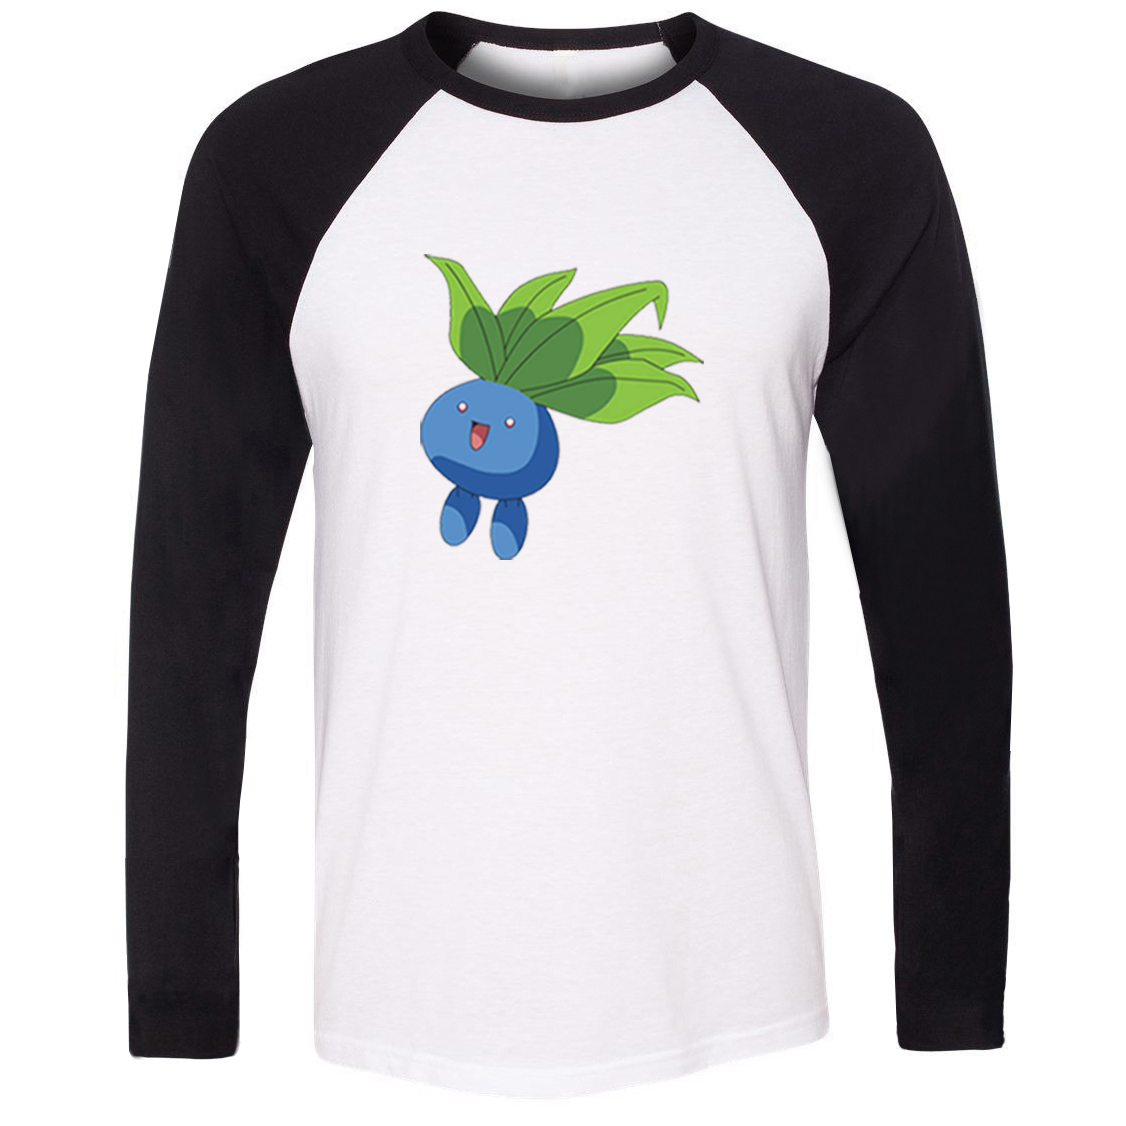 Unisex T-shirt Pokemon National Pokedex 043 Grass Poison Type Oddish Pattern Raglan Long Sleeve Men T shirt Boy Casual Tee Tops image